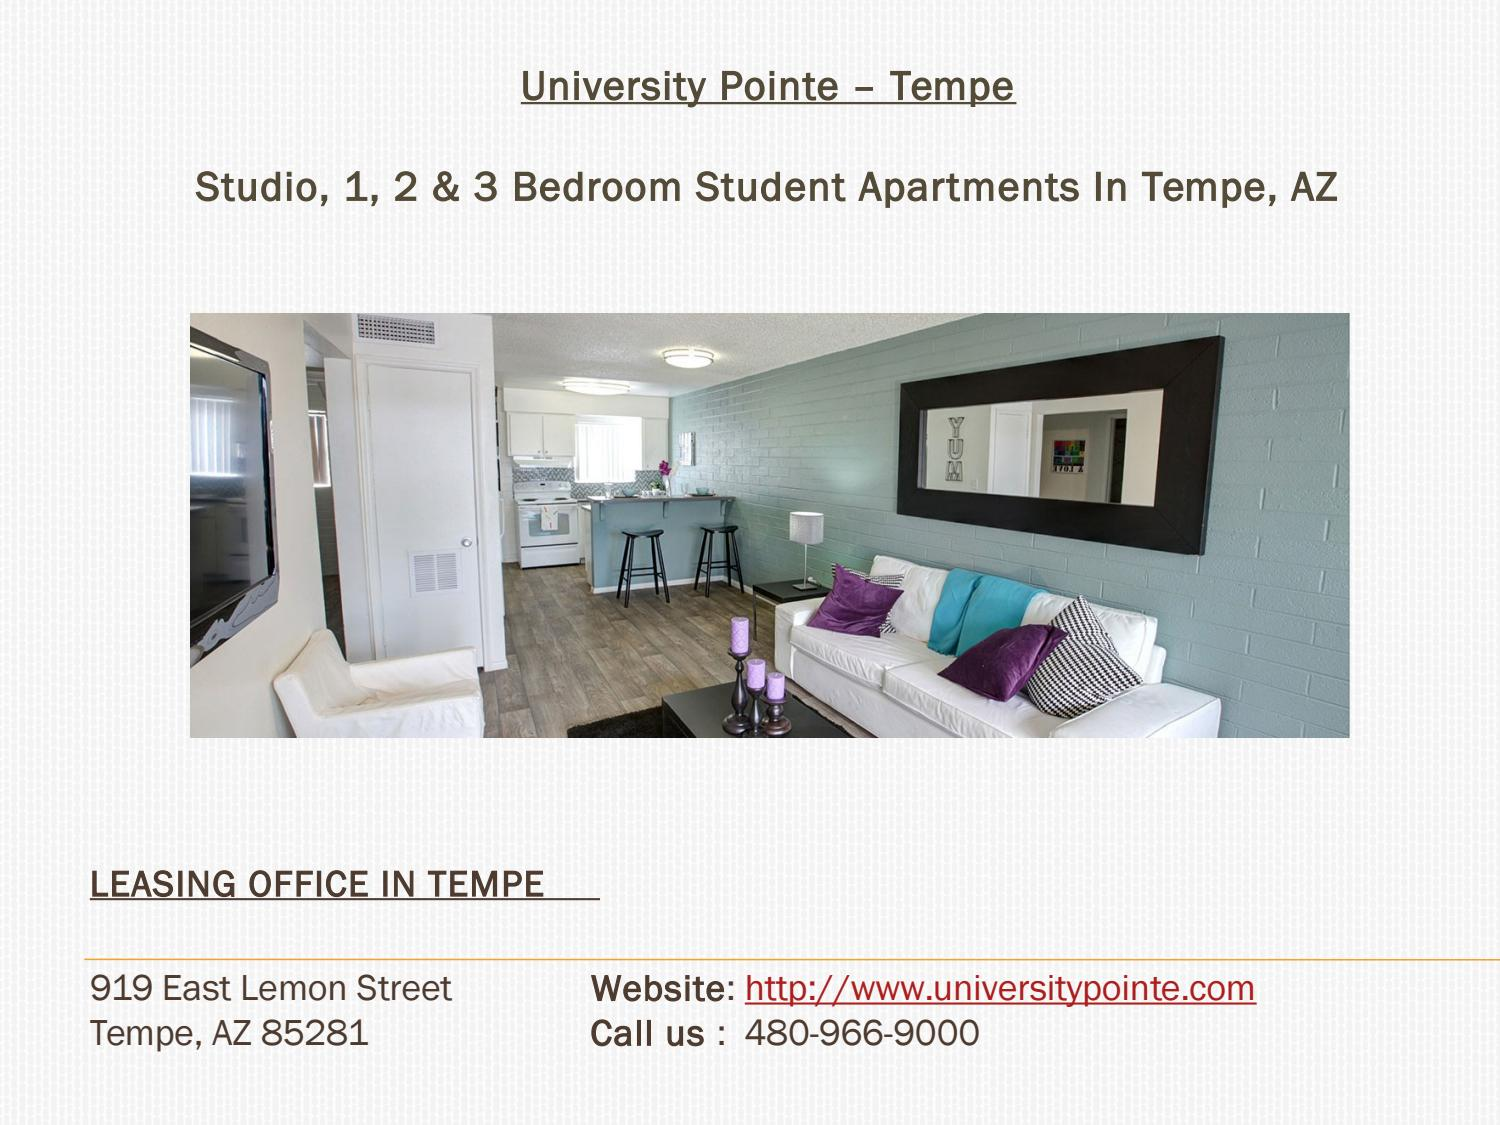 University Pointe Apartments In Tempe Az Near Asu By University Pointe Issuu